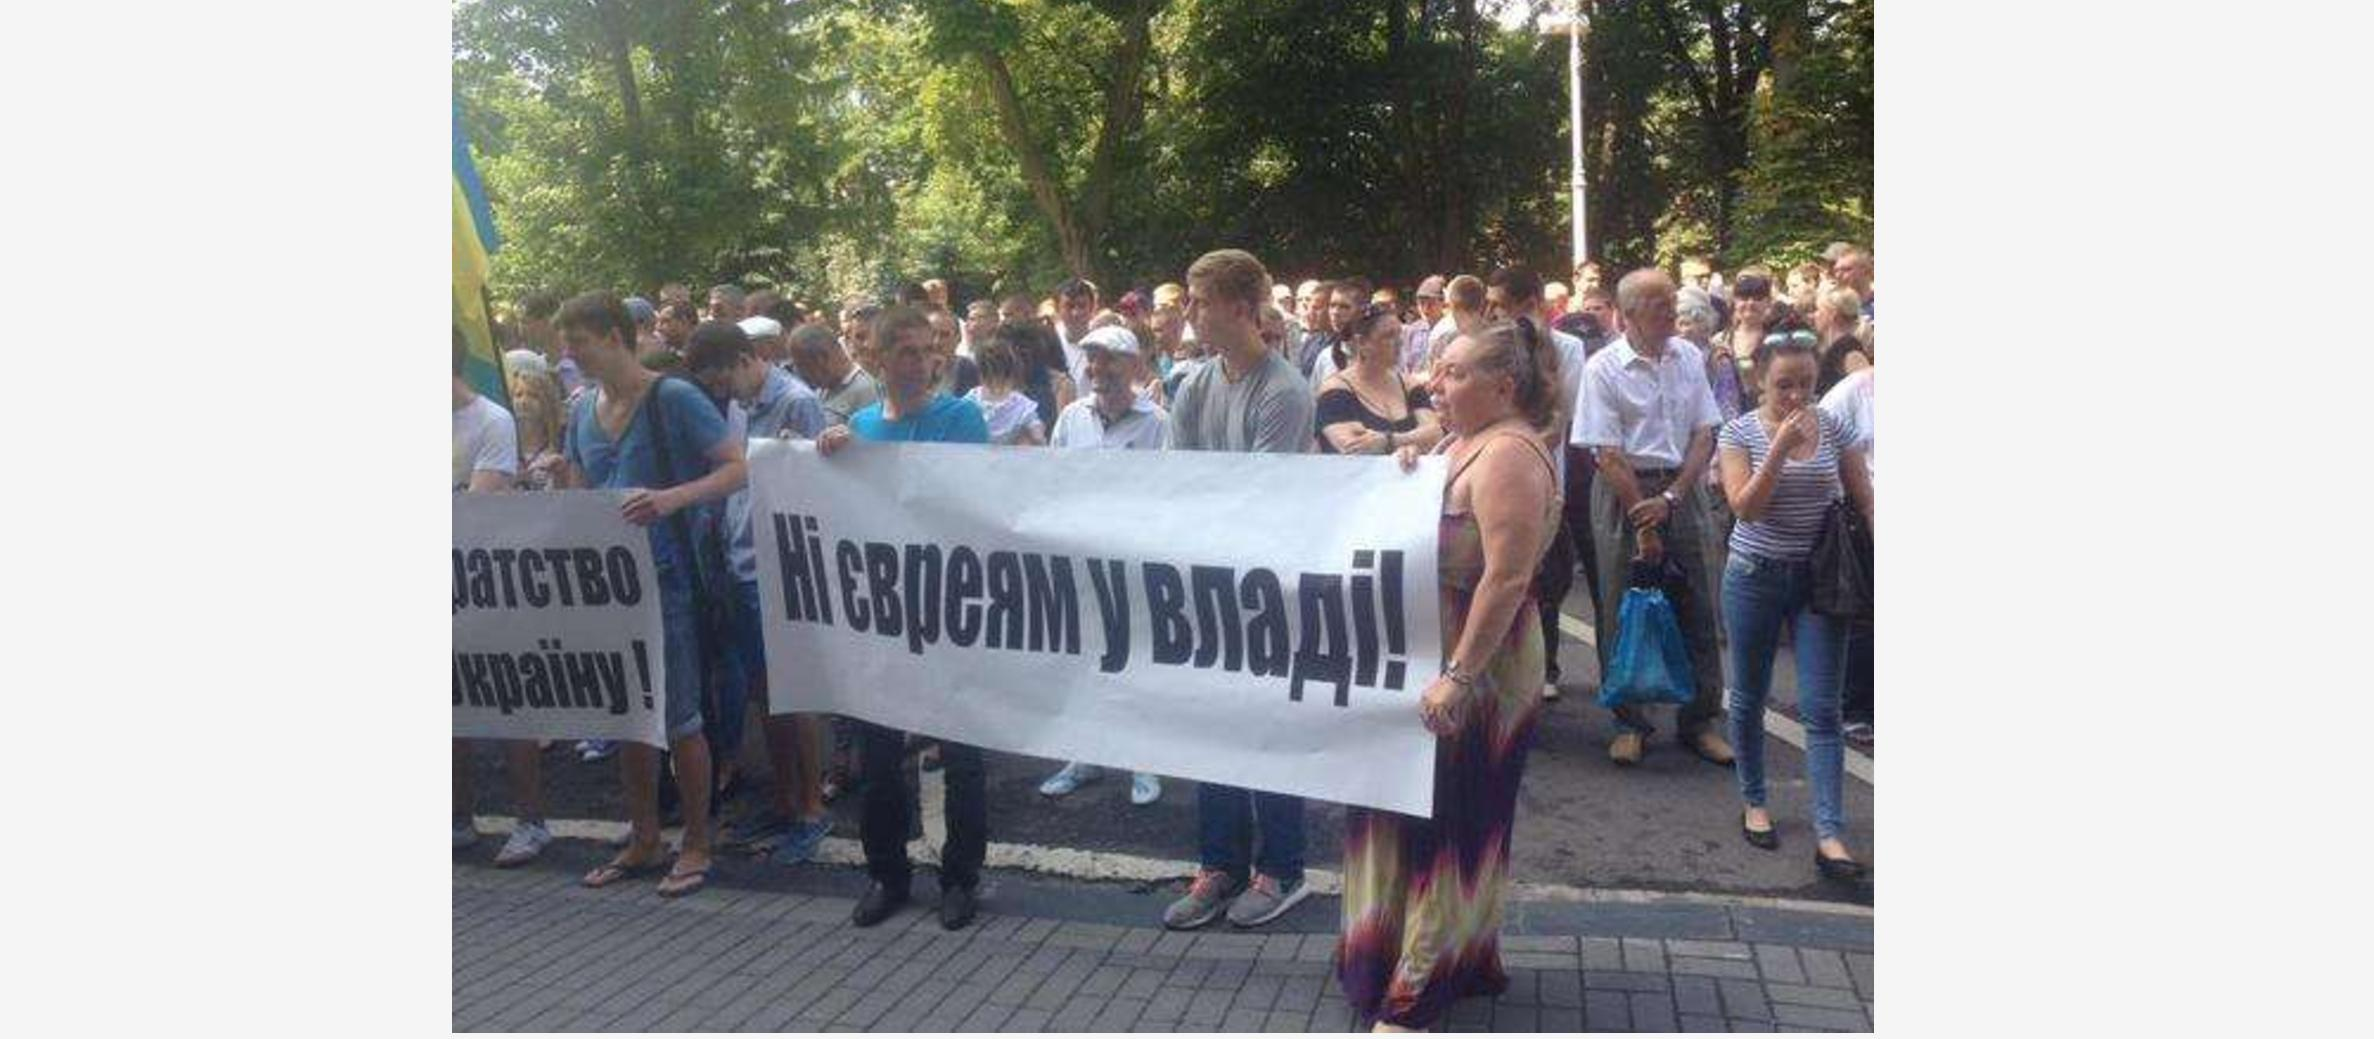 Antisemitic rally in Ukraine calls for no Jews in government